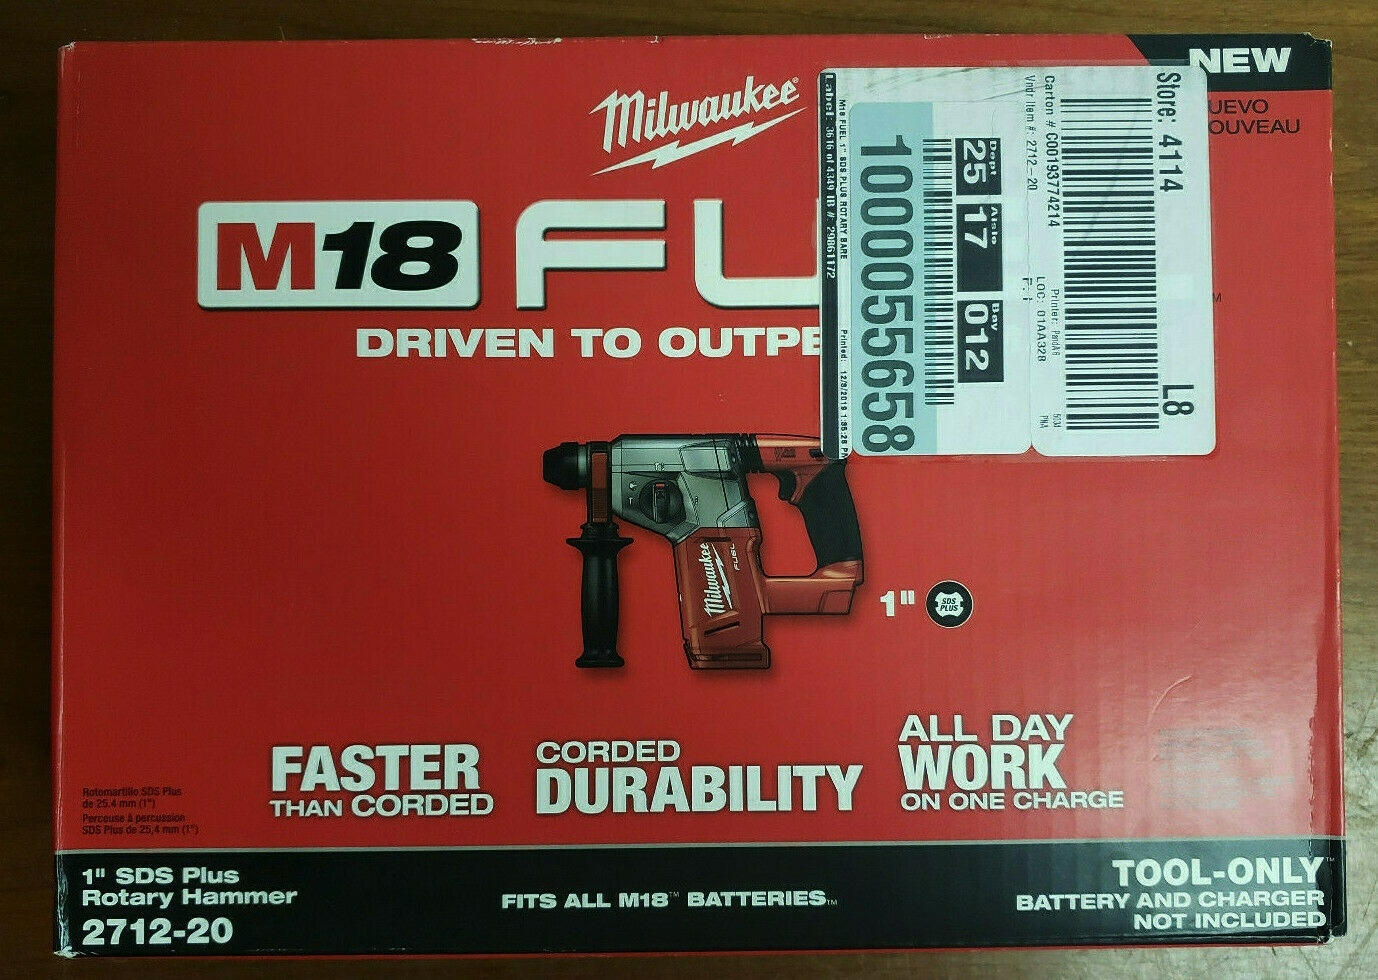 "MILWAUKEE 2712-20 M18 FUEL 1"" SDS PLUS ROTARY HAMMER (TOOL ONLY)-NEW-NOT REFURB - $225.00"